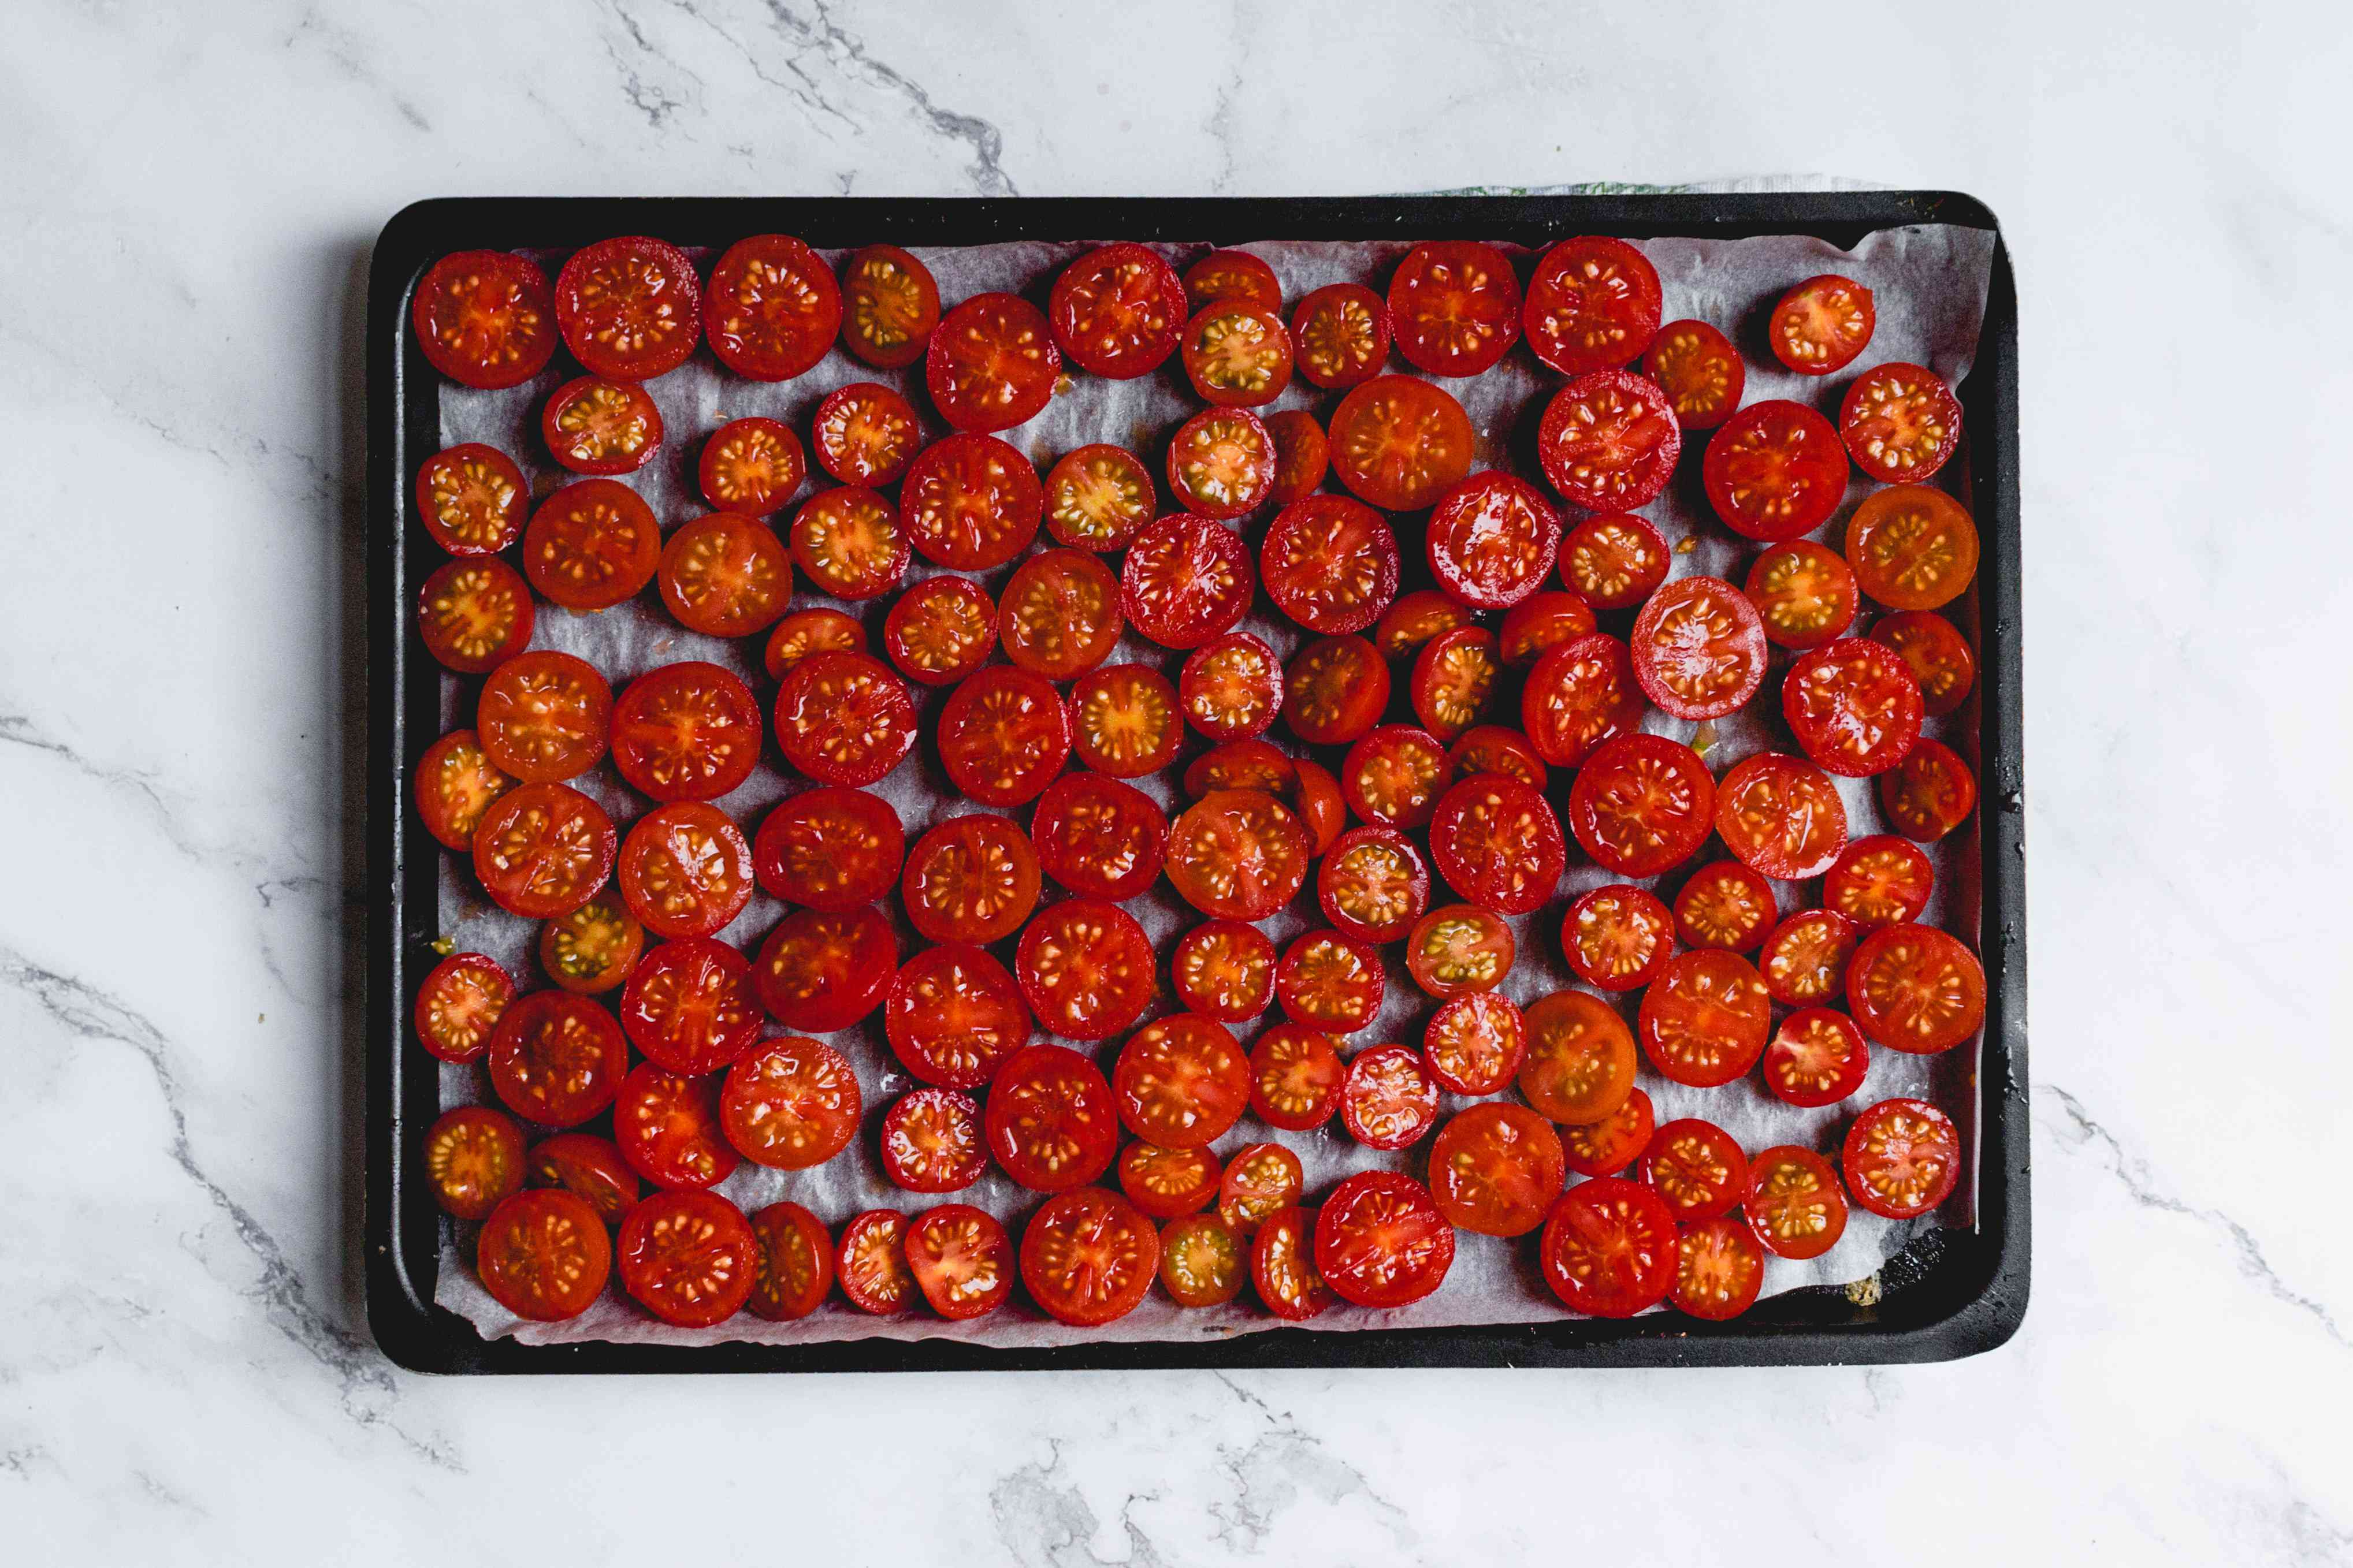 tomatoes on a parchment lined baking sheet